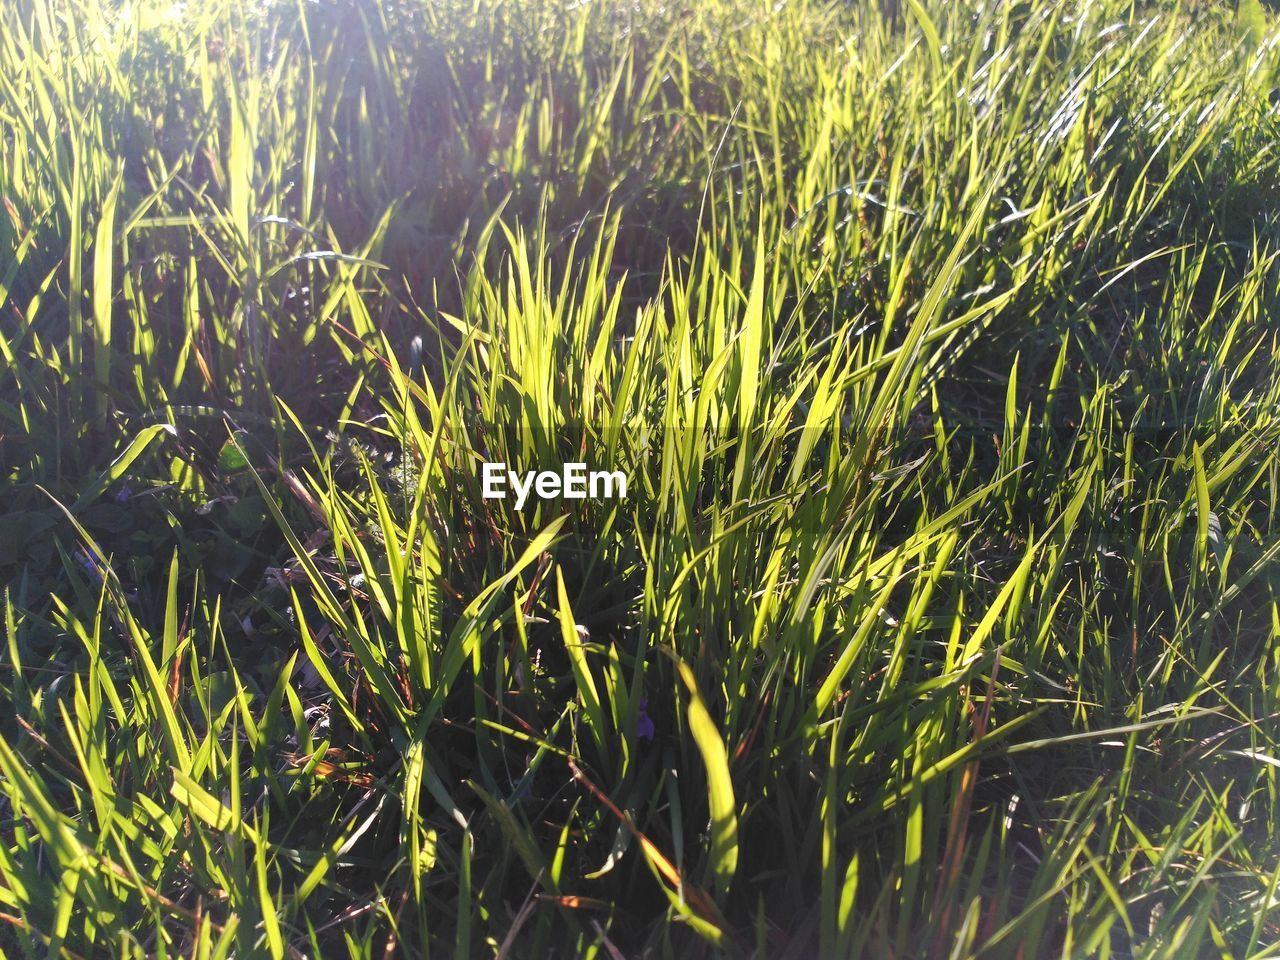 growth, plant, green color, beauty in nature, grass, nature, no people, field, tranquility, day, land, sunlight, close-up, outdoors, full frame, water, backgrounds, selective focus, freshness, focus on foreground, blade of grass